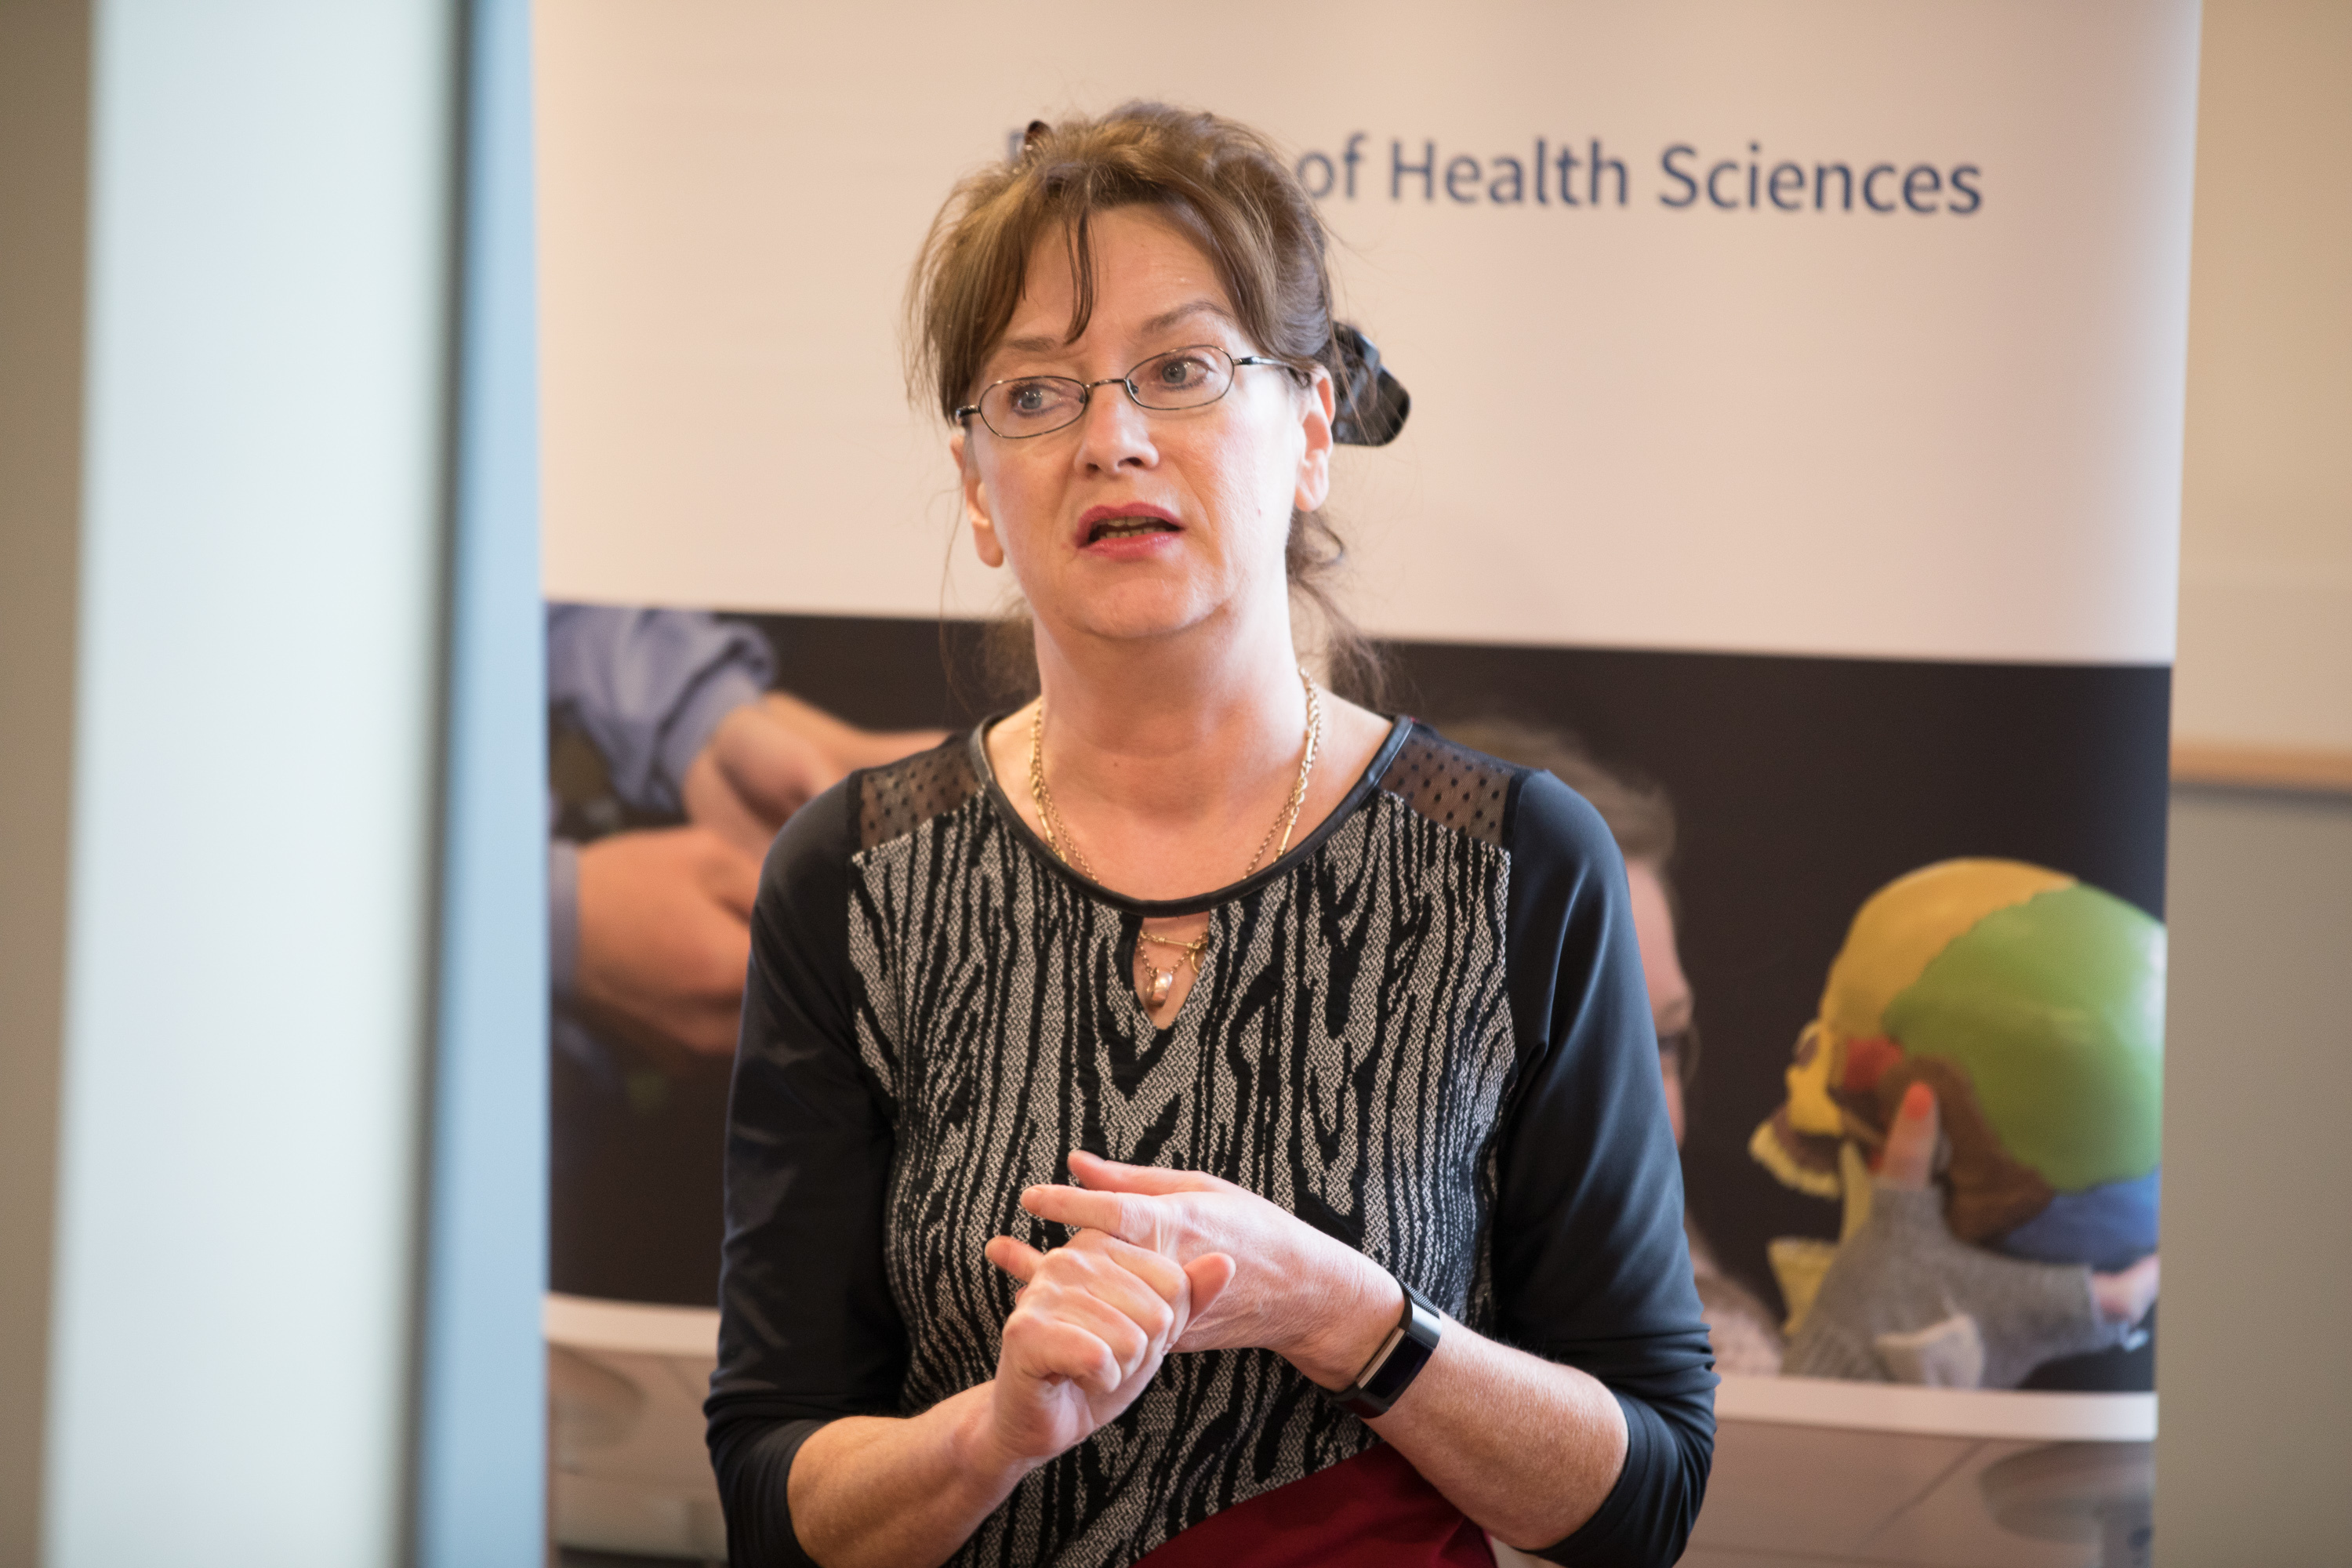 A picture of Dr Deirdre Daly: Principal investigator of the Maternal health And Maternal Morbidity in Ireland (MAMMI) study.